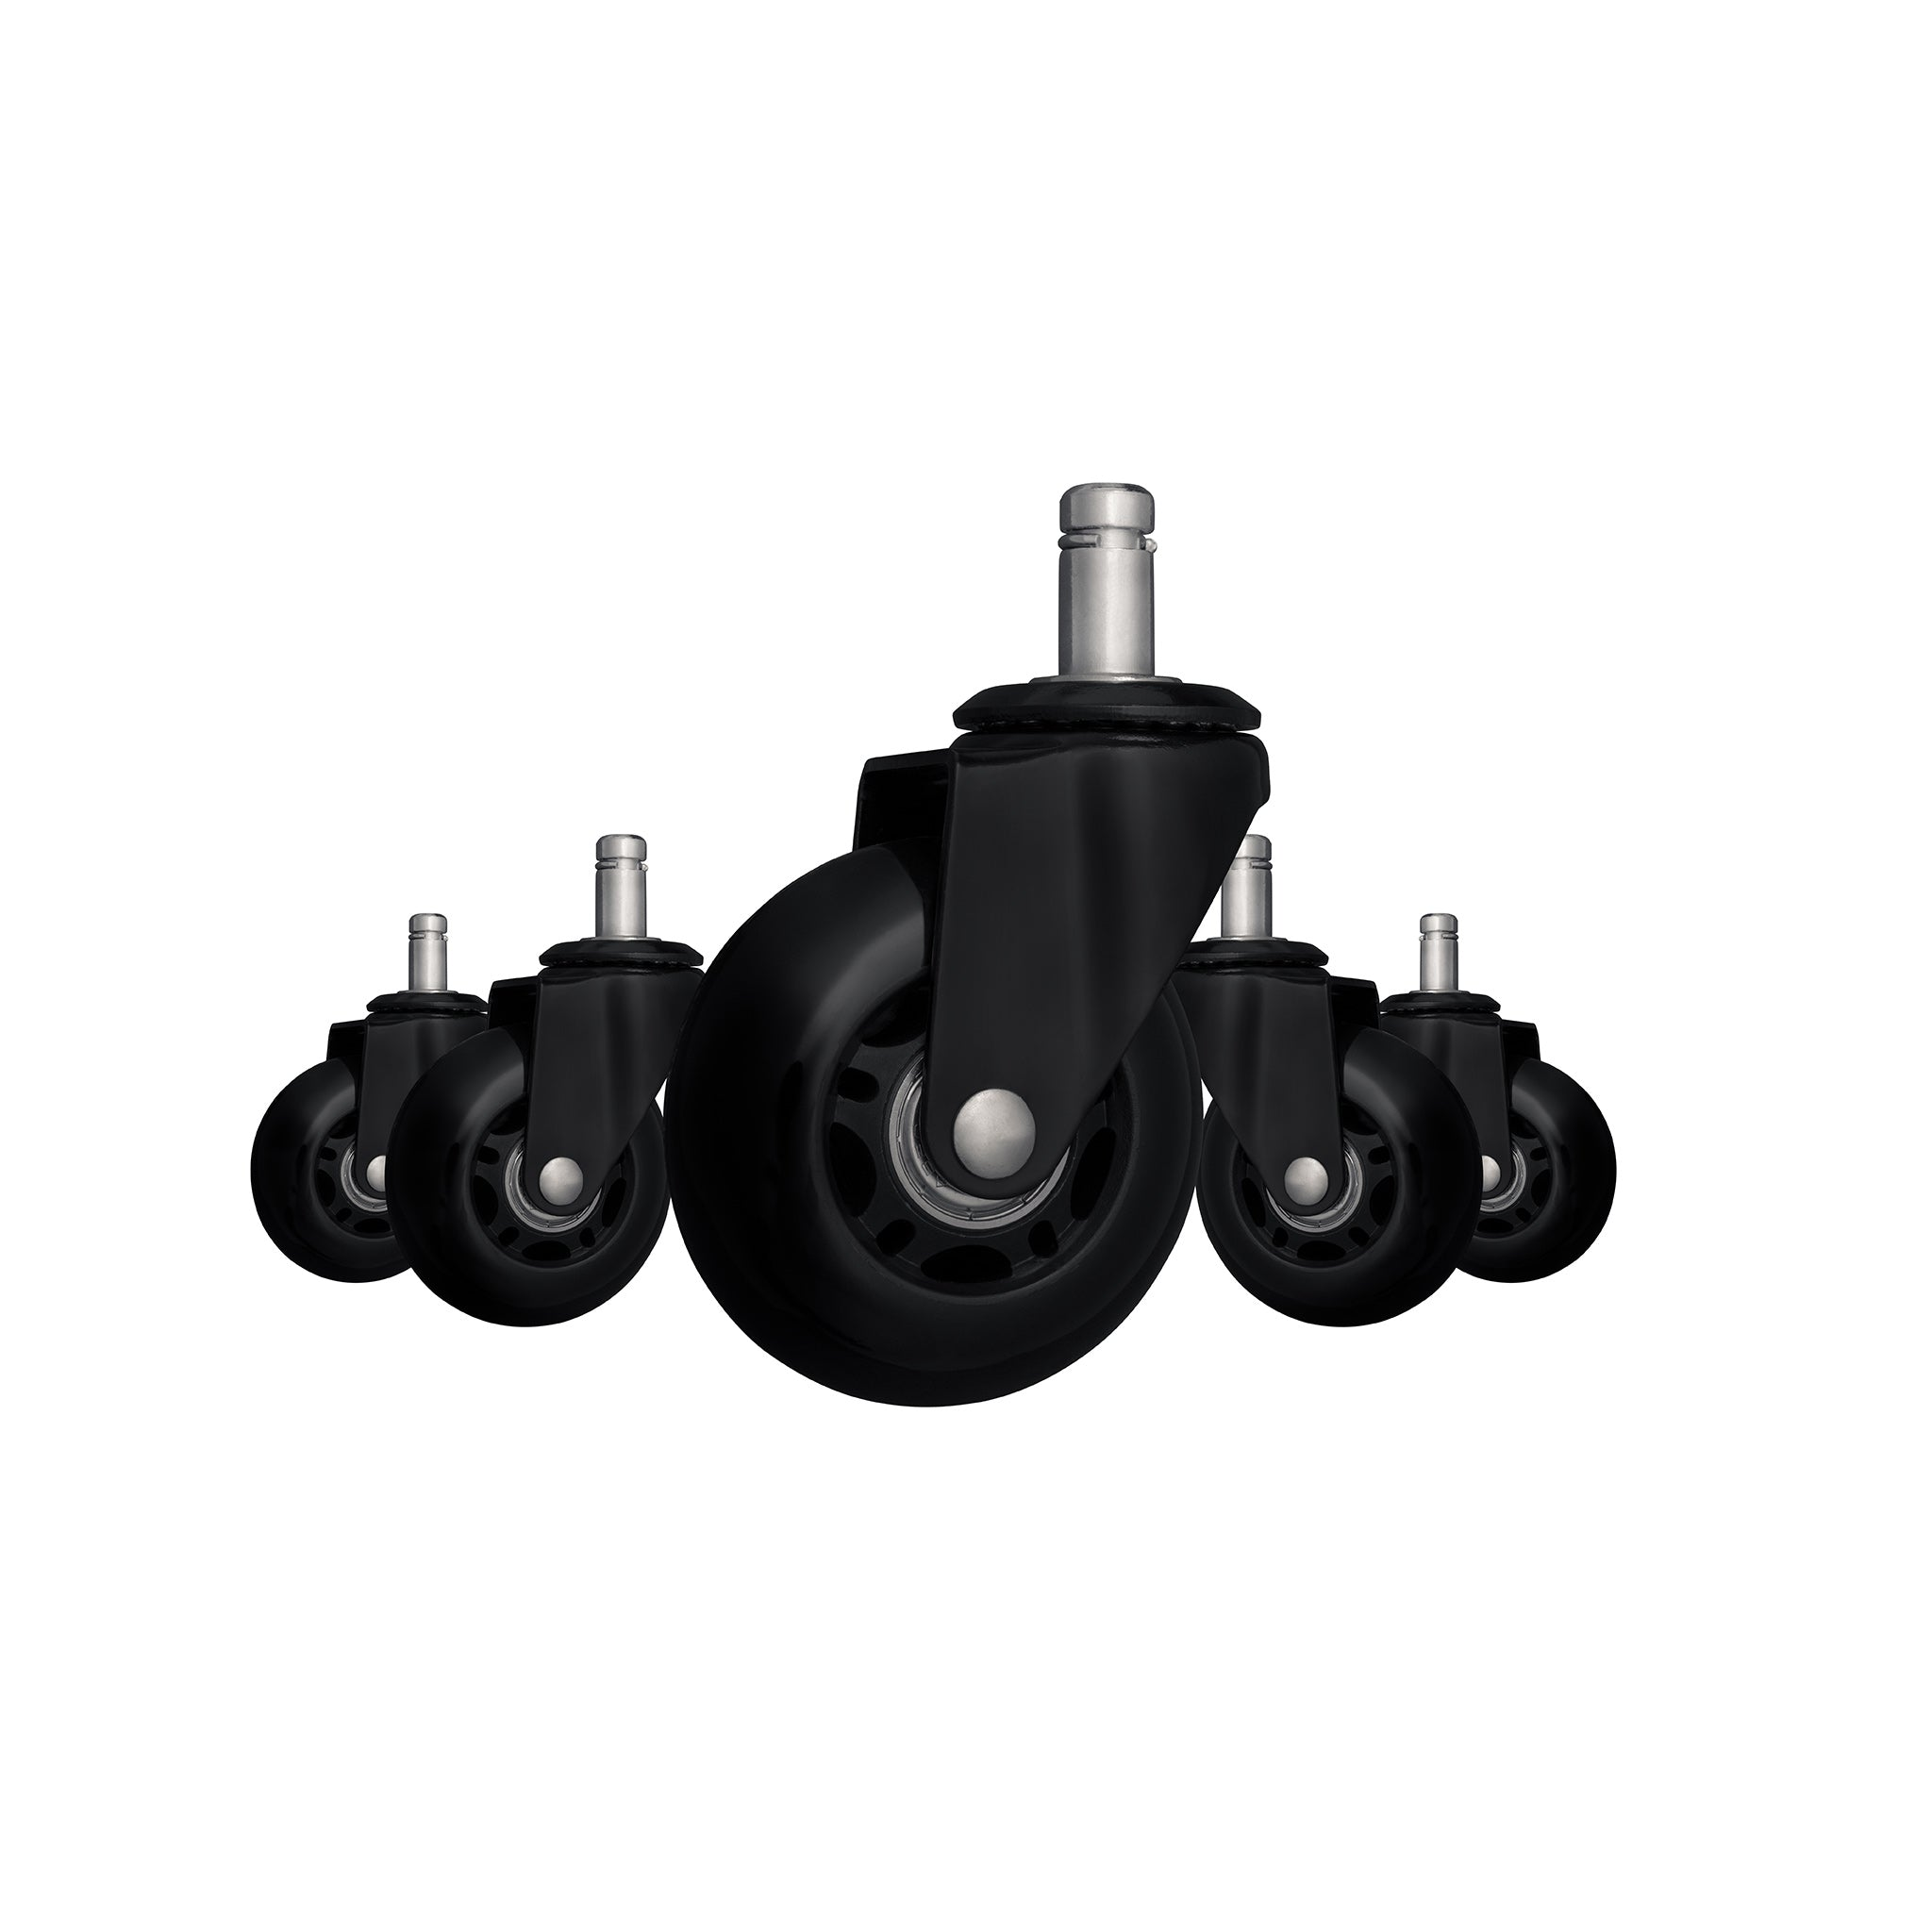 Premium Hardwood Safe Rolling Casters - Black (Set of 5)